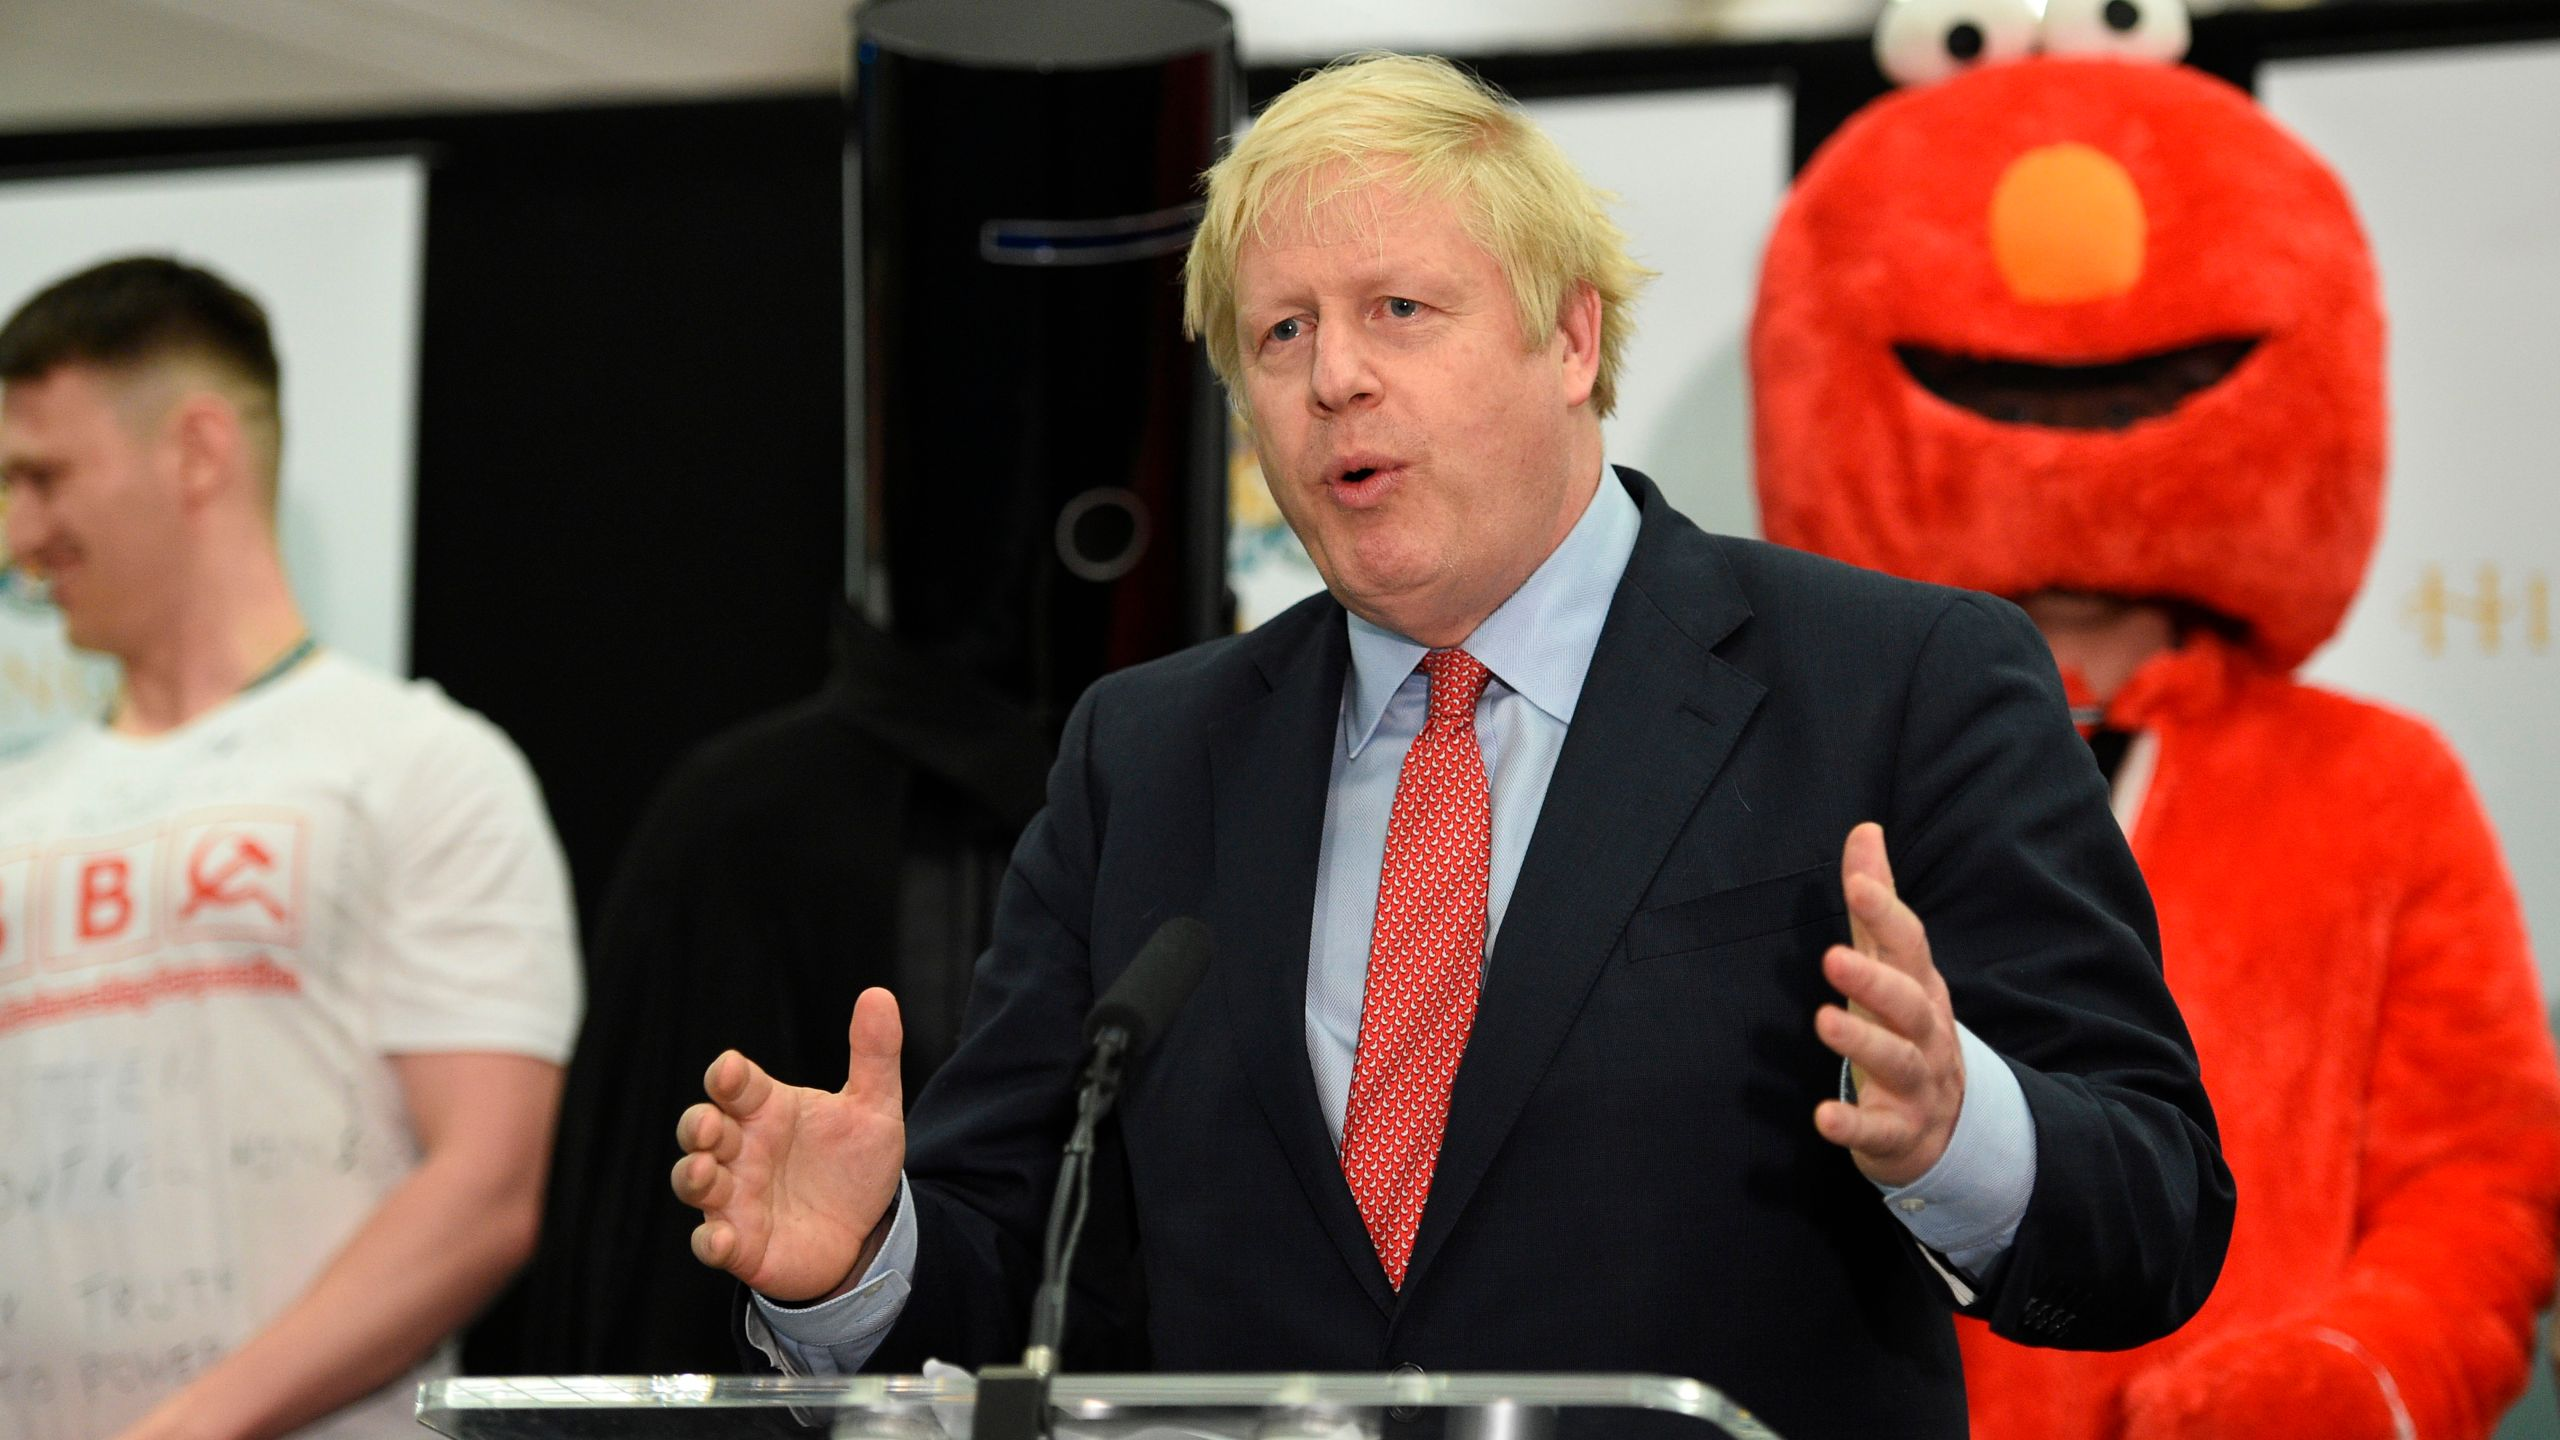 Britain's Prime Minister and Conservative Party leader Boris Johnson gives a speech on stage after retaining his seat in west London on Dec. 13, 2019. (Credit: Oli Scarff / AFP / Getty Images)